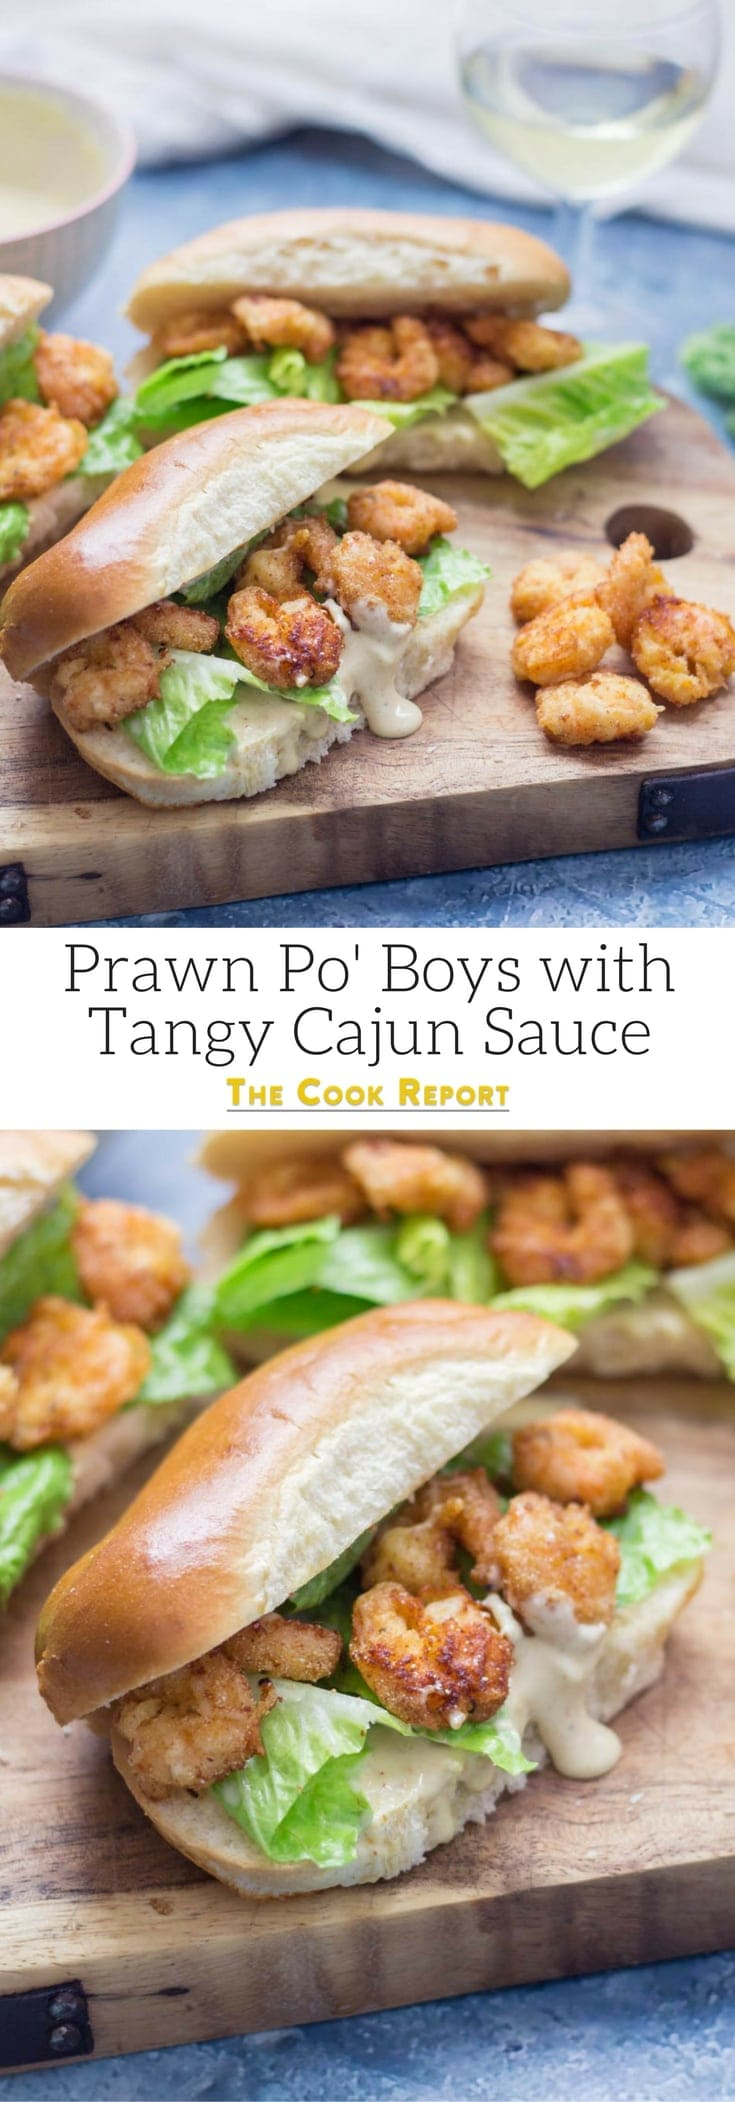 Prawn po' boys are made up of crispy prawns nestled into a bread roll with crunchy lettuce & tangy Cajun sauce. Bring a taste of New Orleans to your home! #sandwich #seafood #poboy #cajunfood #recipe